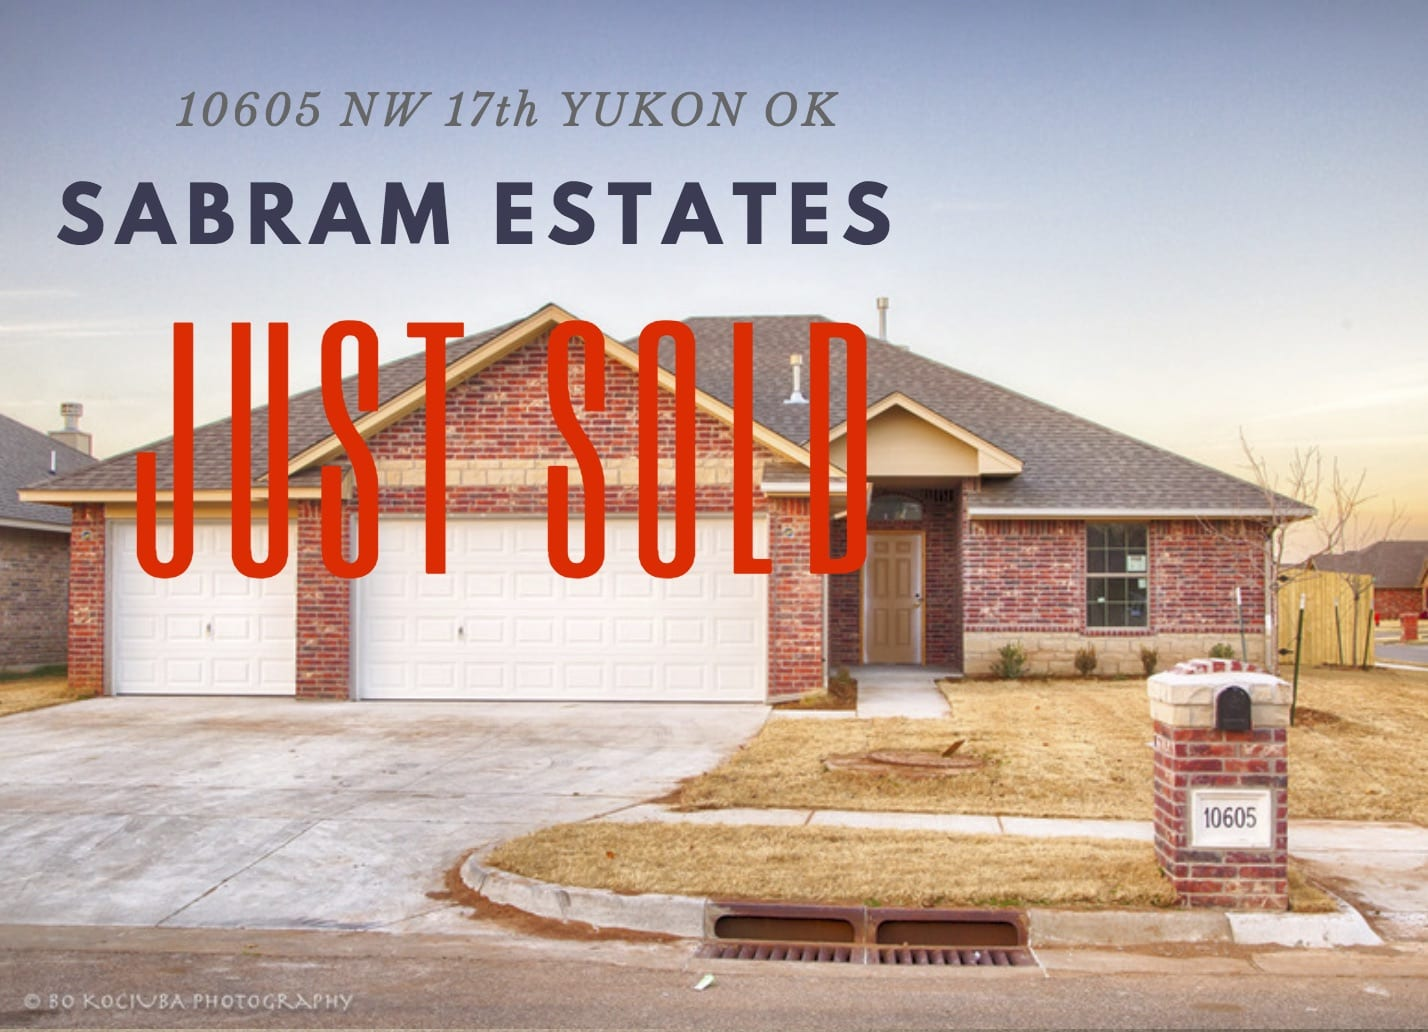 YUKON HOMES - 10605 NW 17TH - SABRAM ESTATES